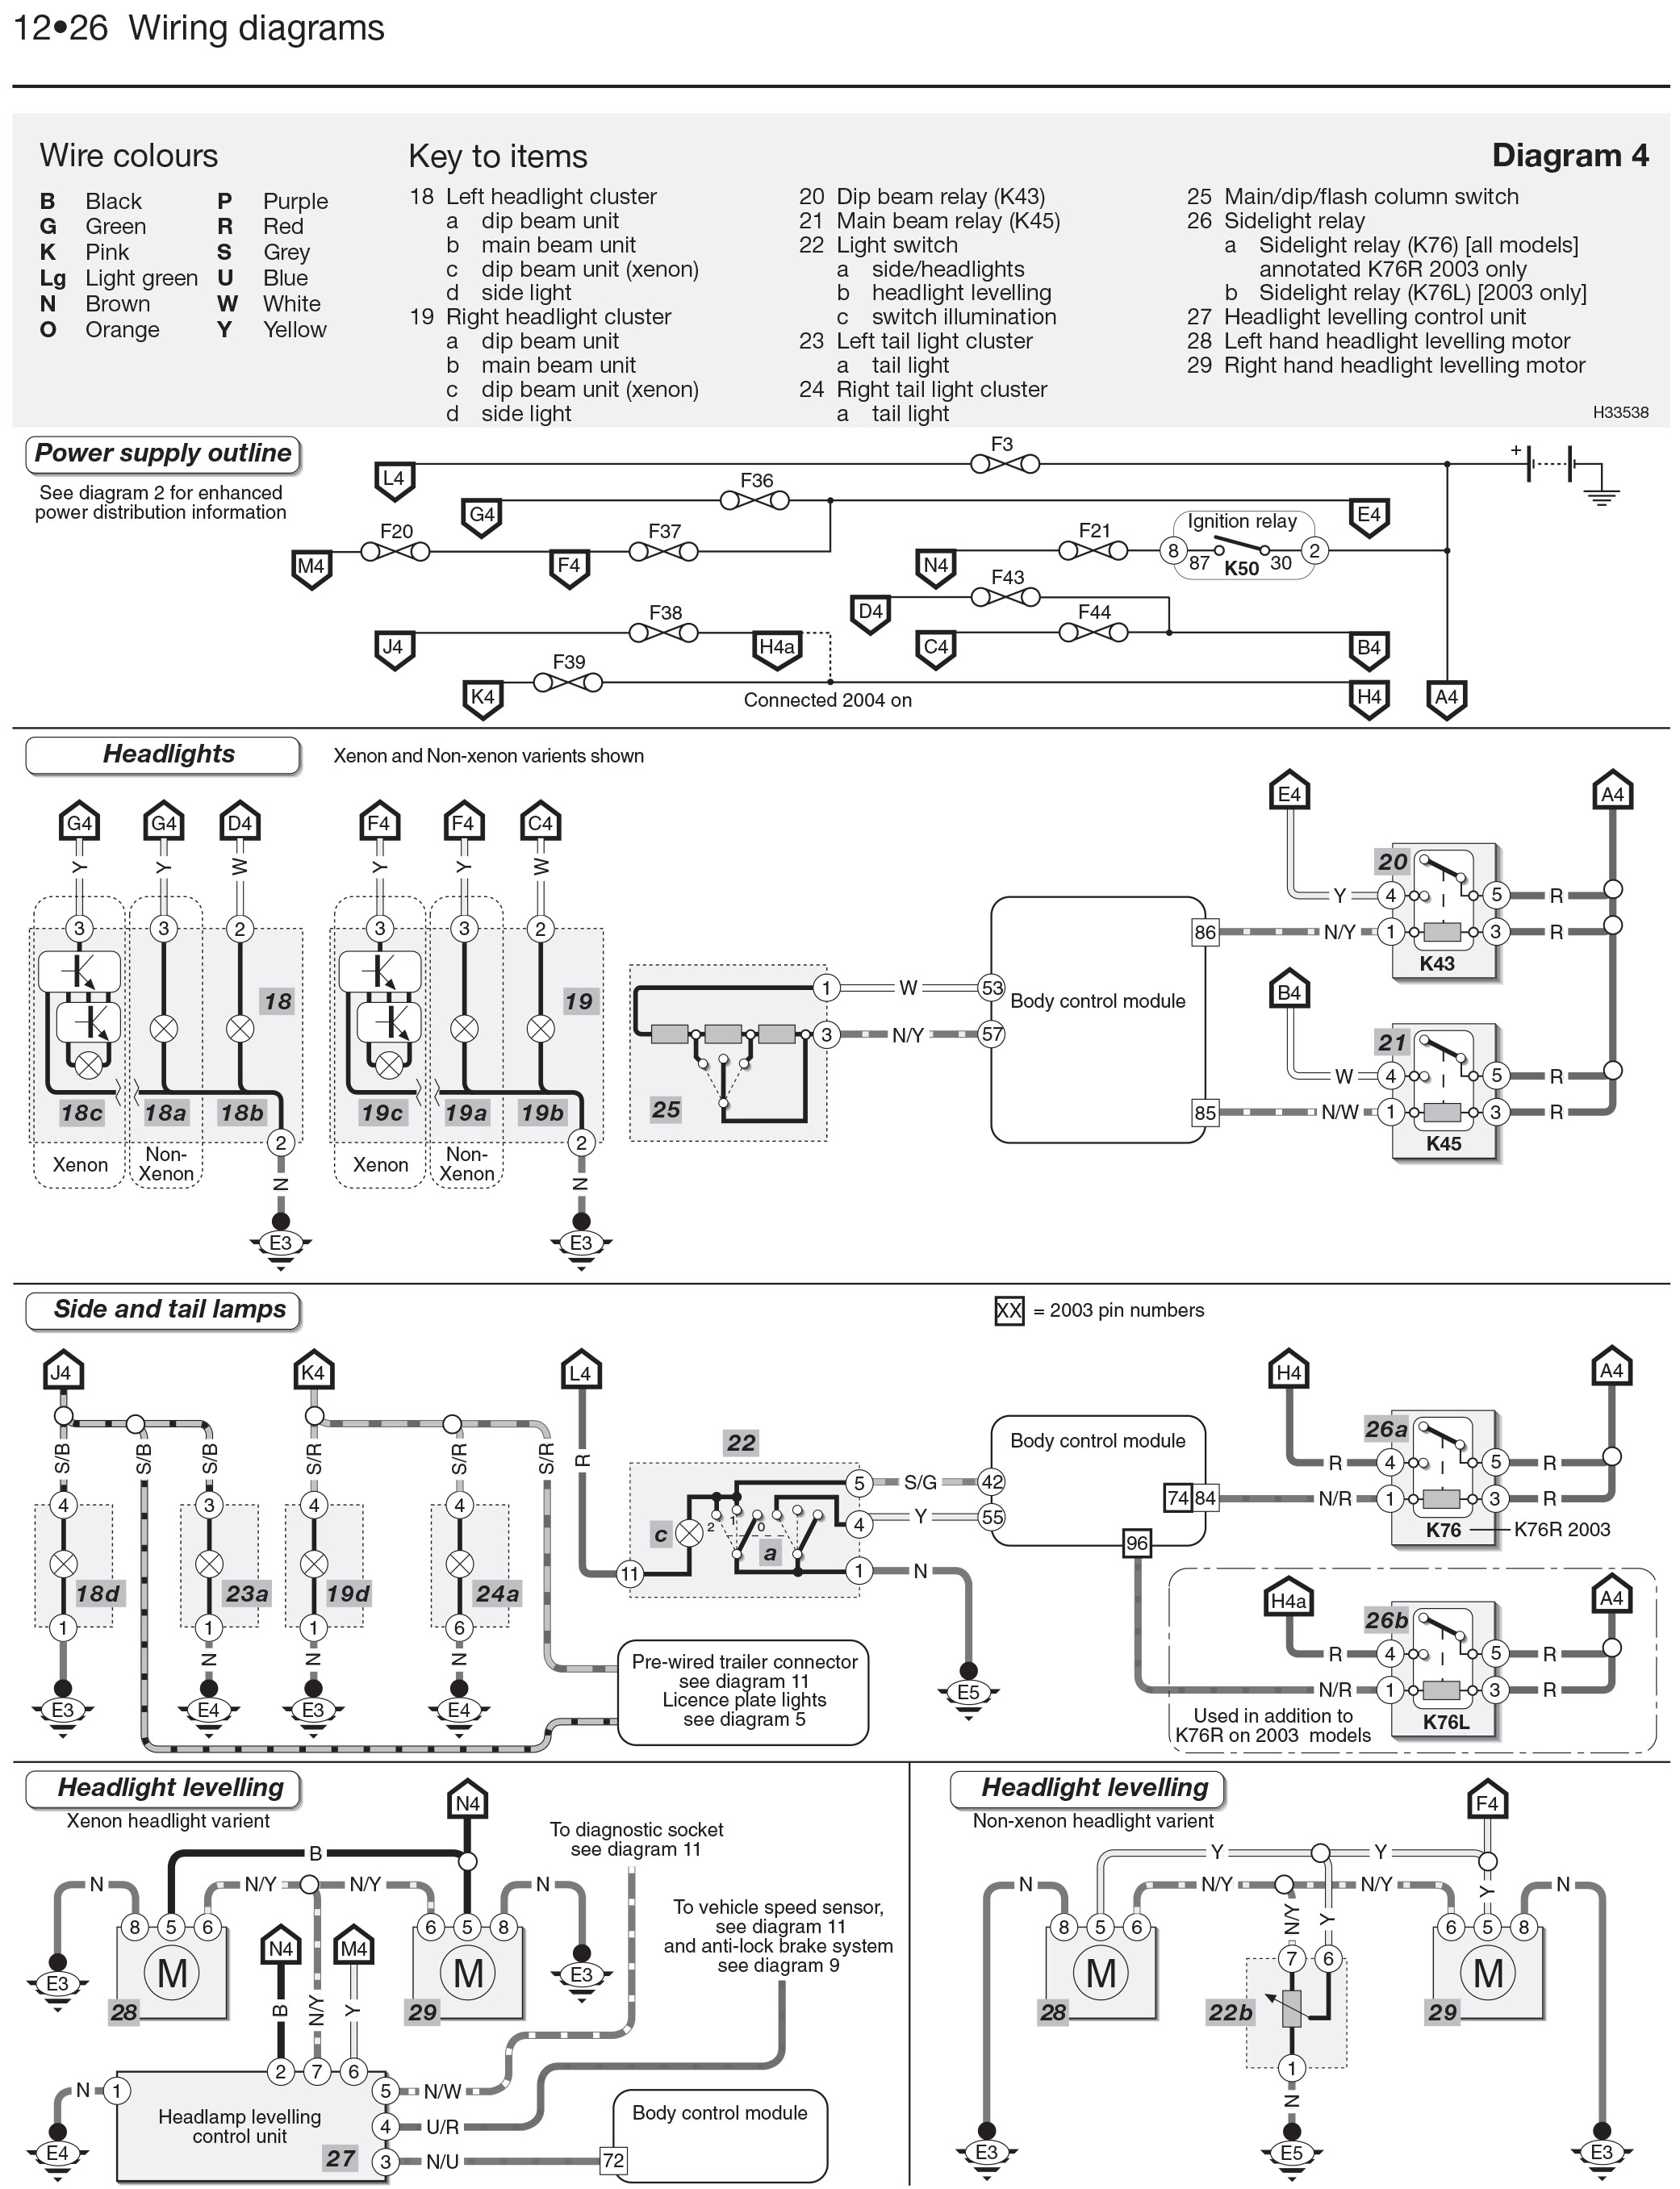 Vauxhall Corsa Diesel Wiring Diagram Archive Of Automotive Z18xe Ecu Opel Petrol Oct 00 Aug 06 Haynes Repair Rh Com